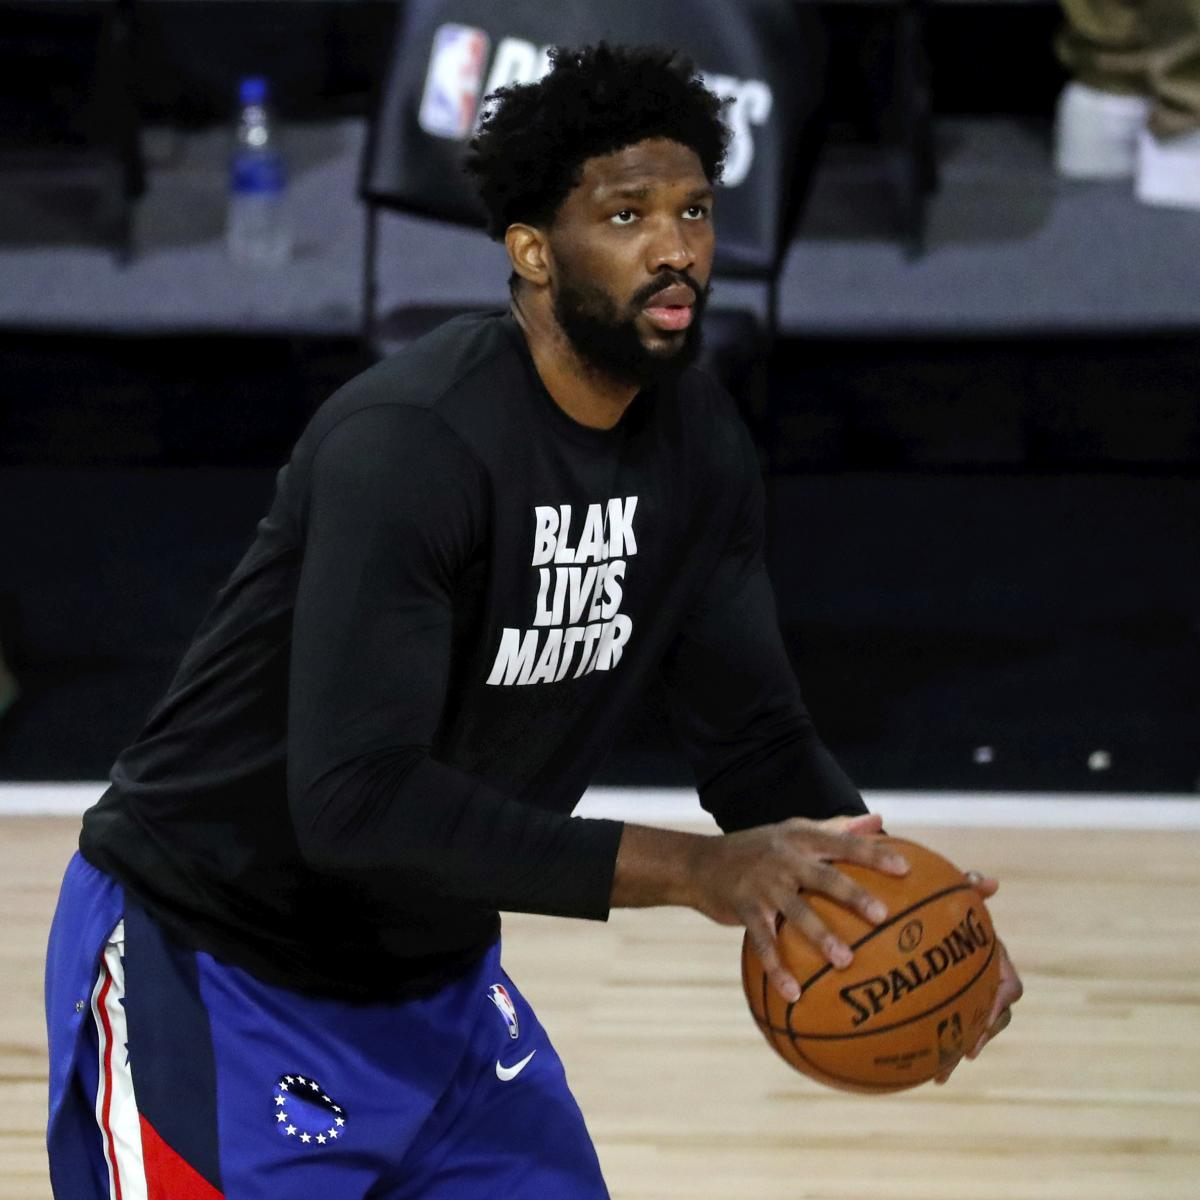 76ers' Daryl Morey Shares FaceTime Photo with Joel Embiid: 'On to Bigger Things'